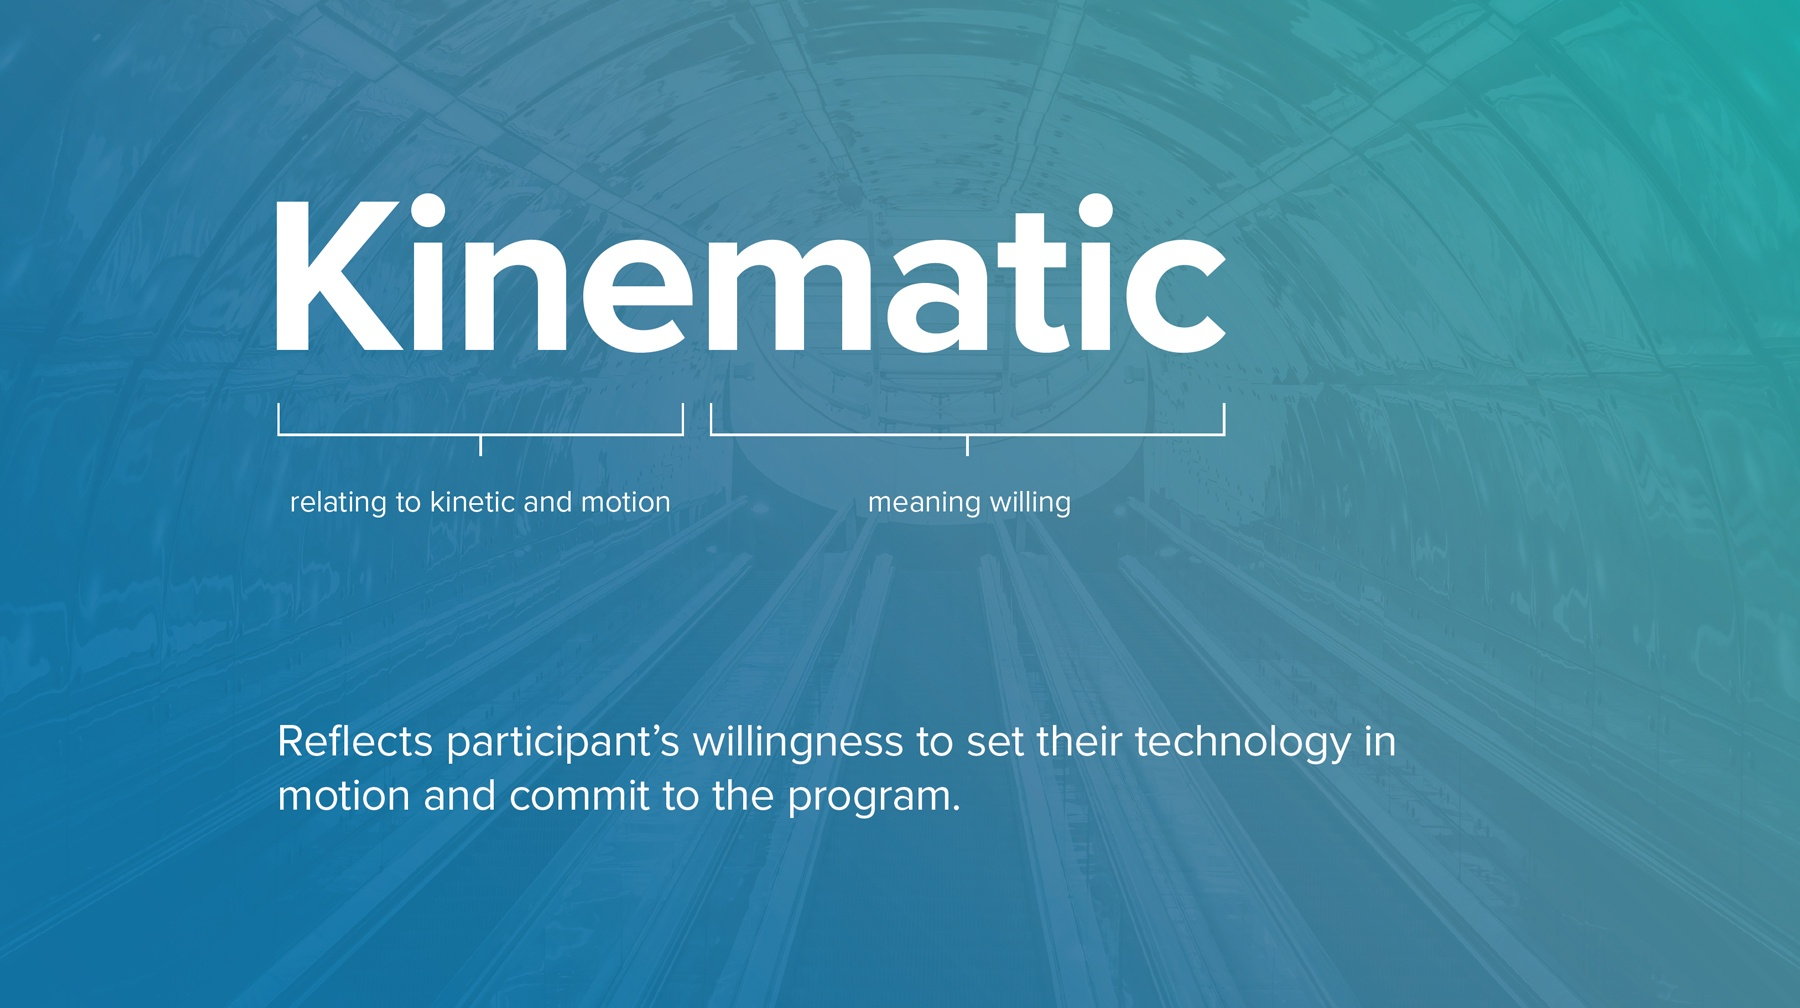 A screen explaining the reason for the name Kinematic